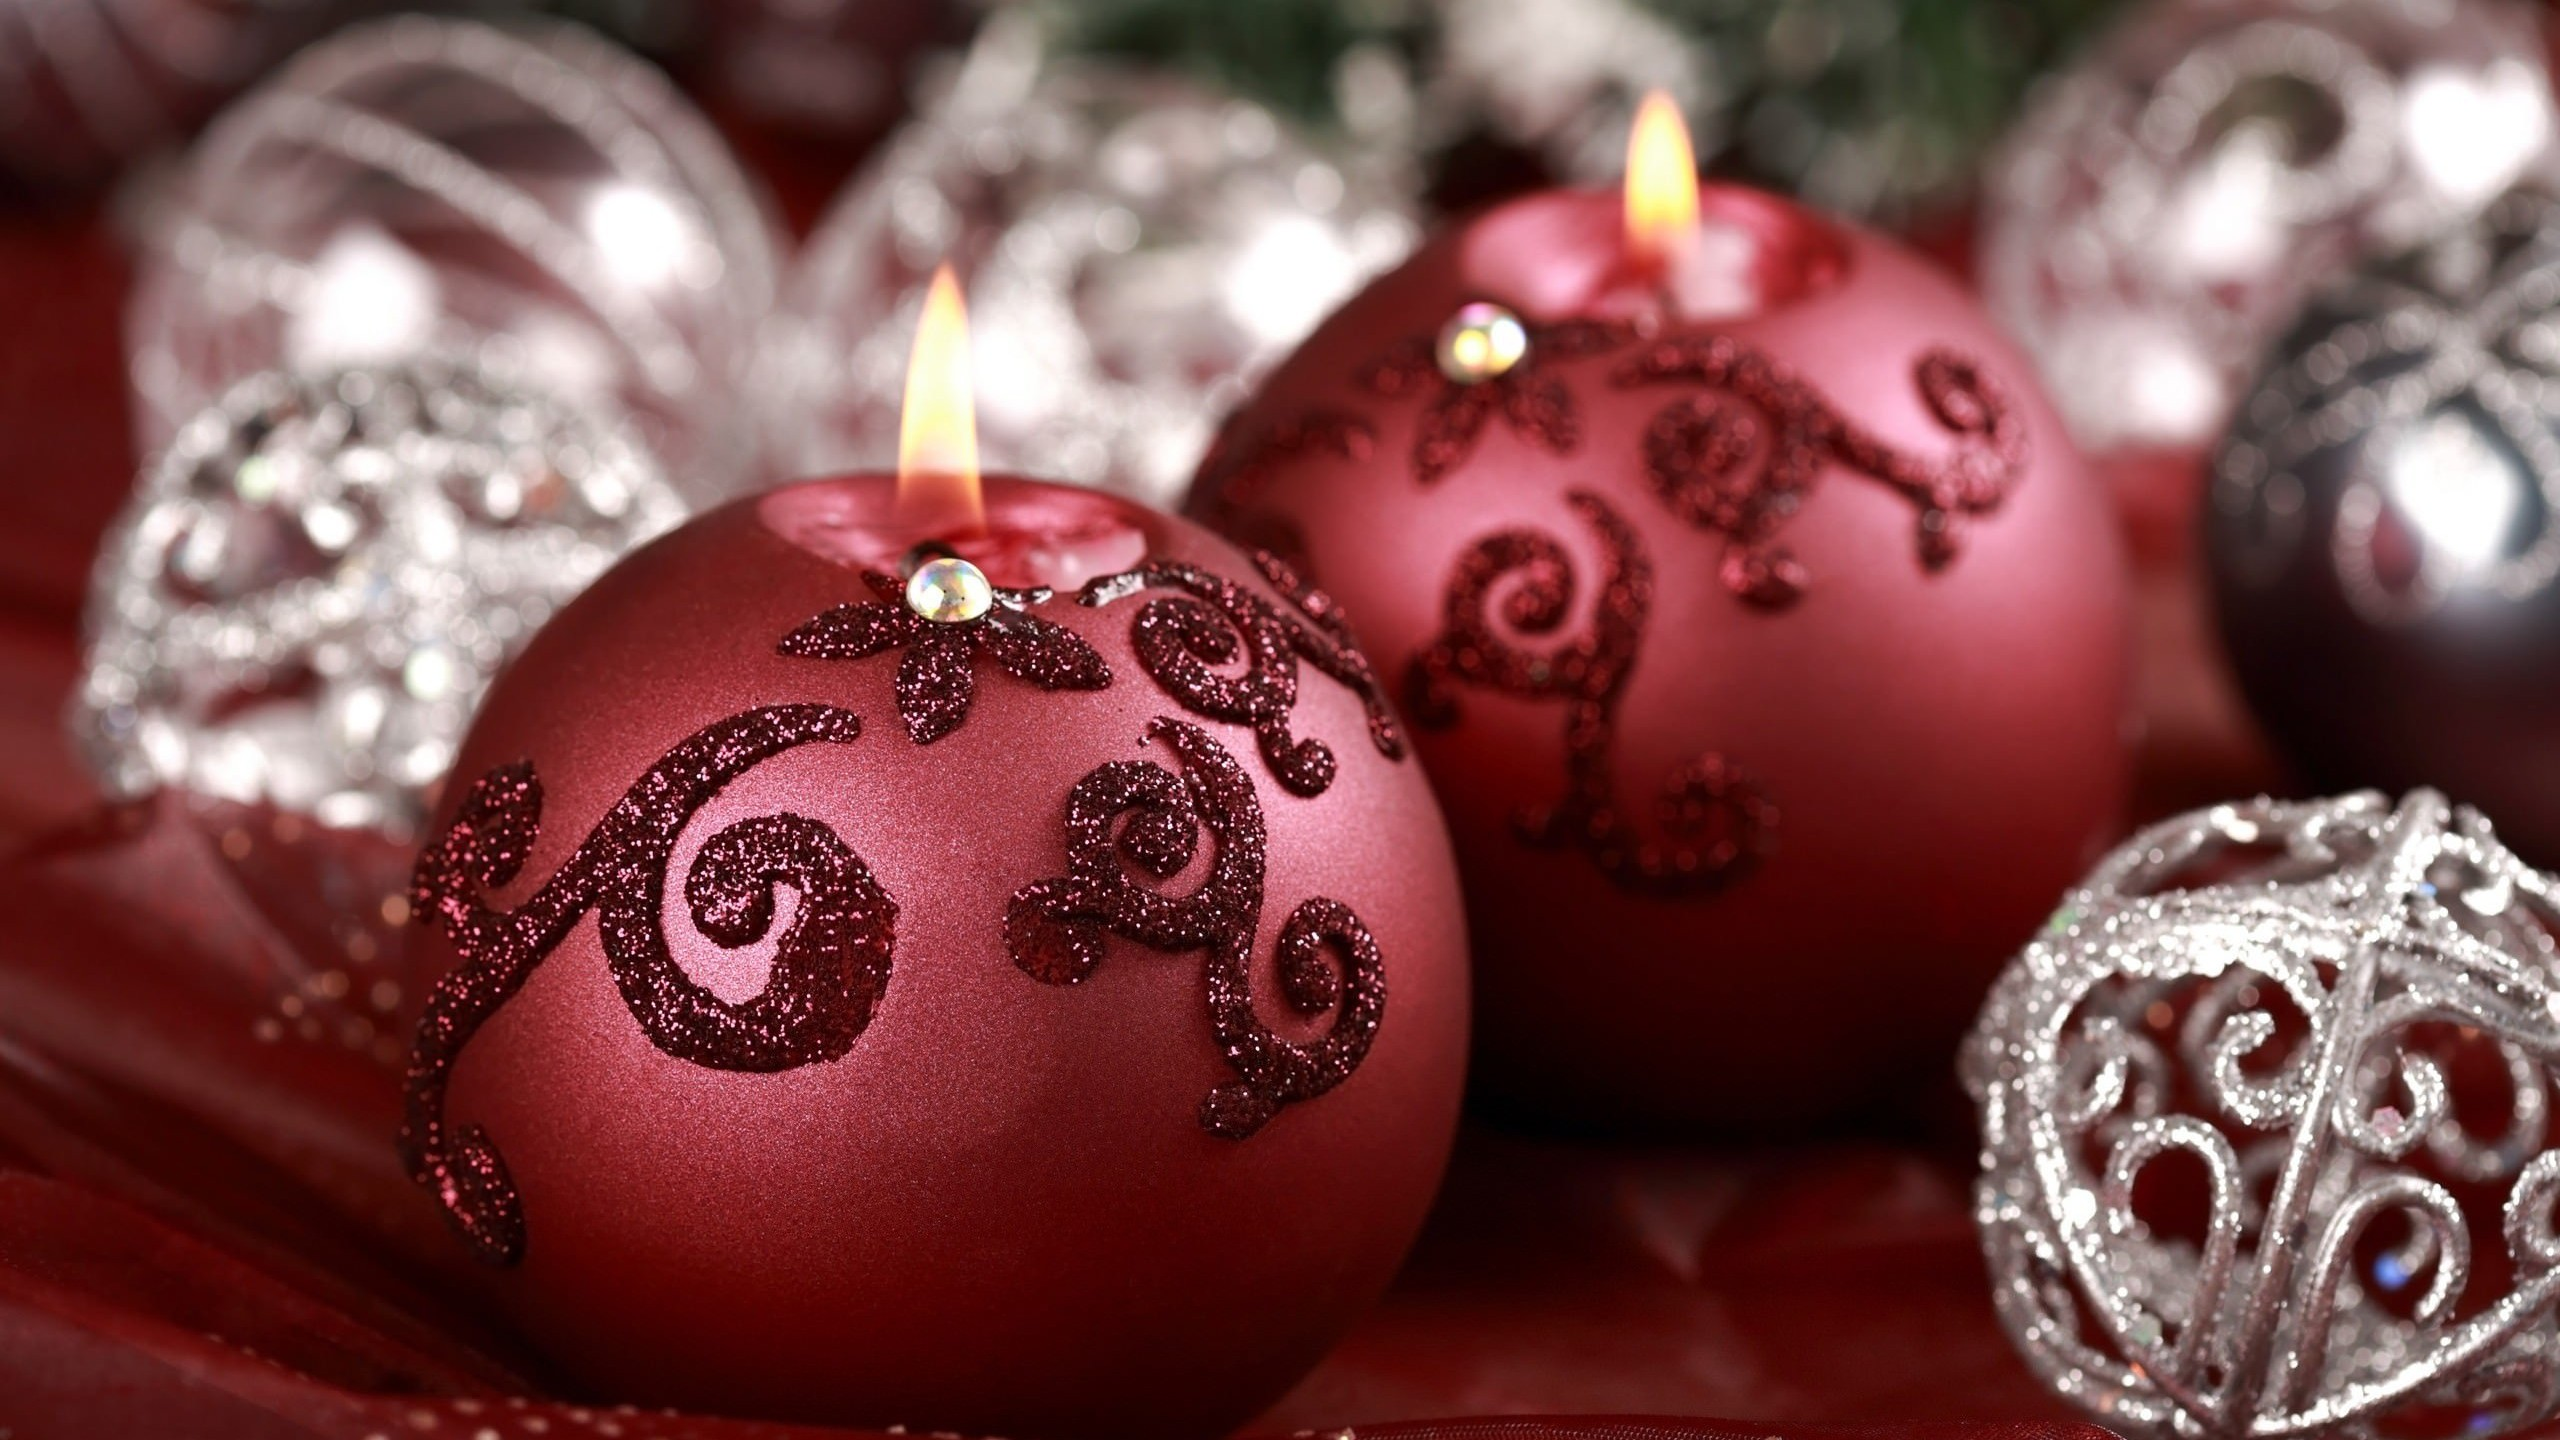 Red Christmas Ornament Ball Candles Wallpaper for Desktop 2560x1440